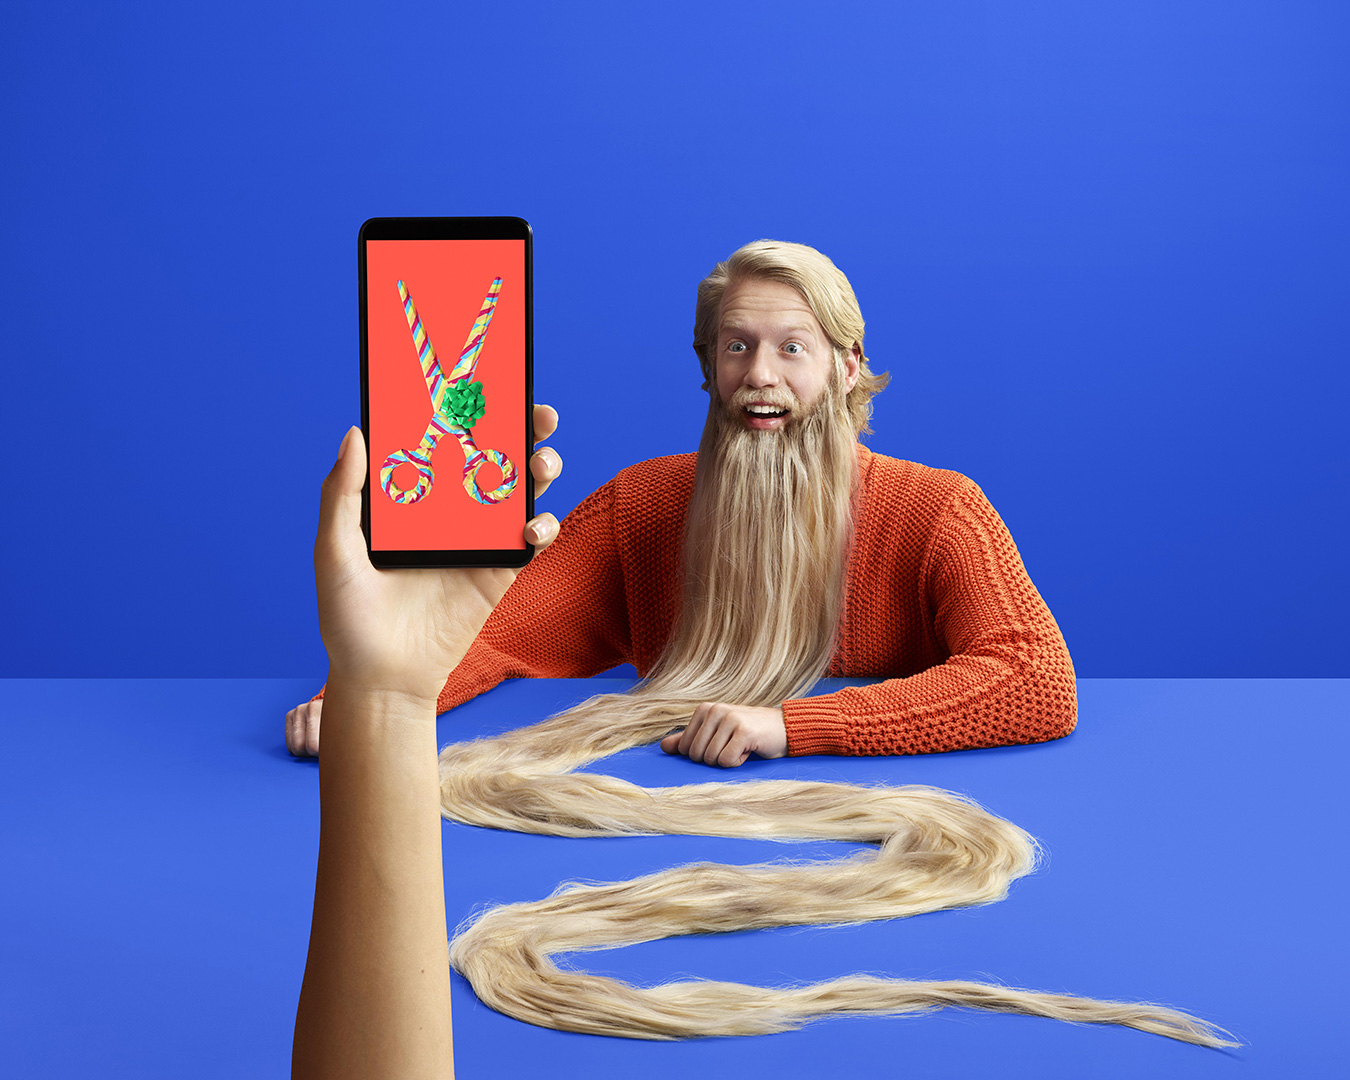 surrealist shot of a man with a very long beard and a hand holding a mobile phone displaying scissors by Simon Duhamel for FIzz